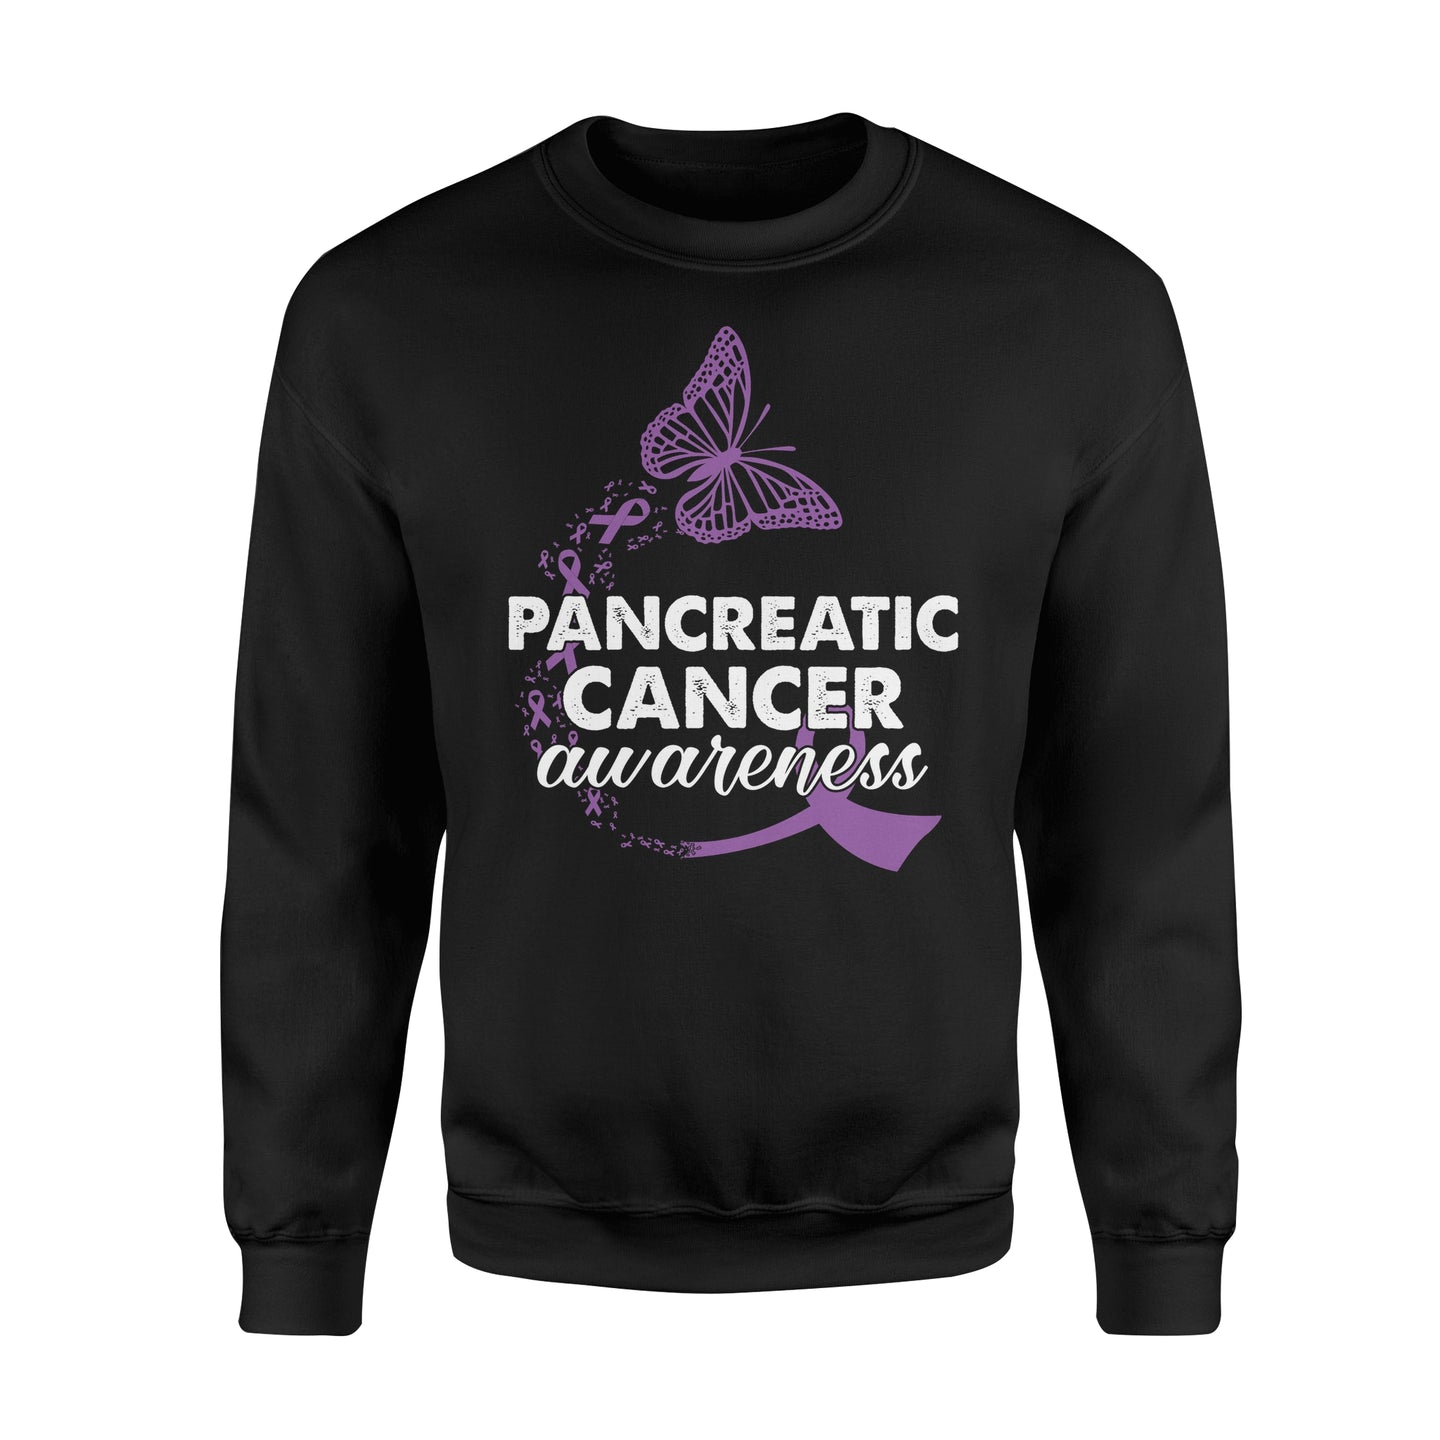 Pancreatic Cancer Awareness - Standard Fleece Sweatshirt Apparel S / Black